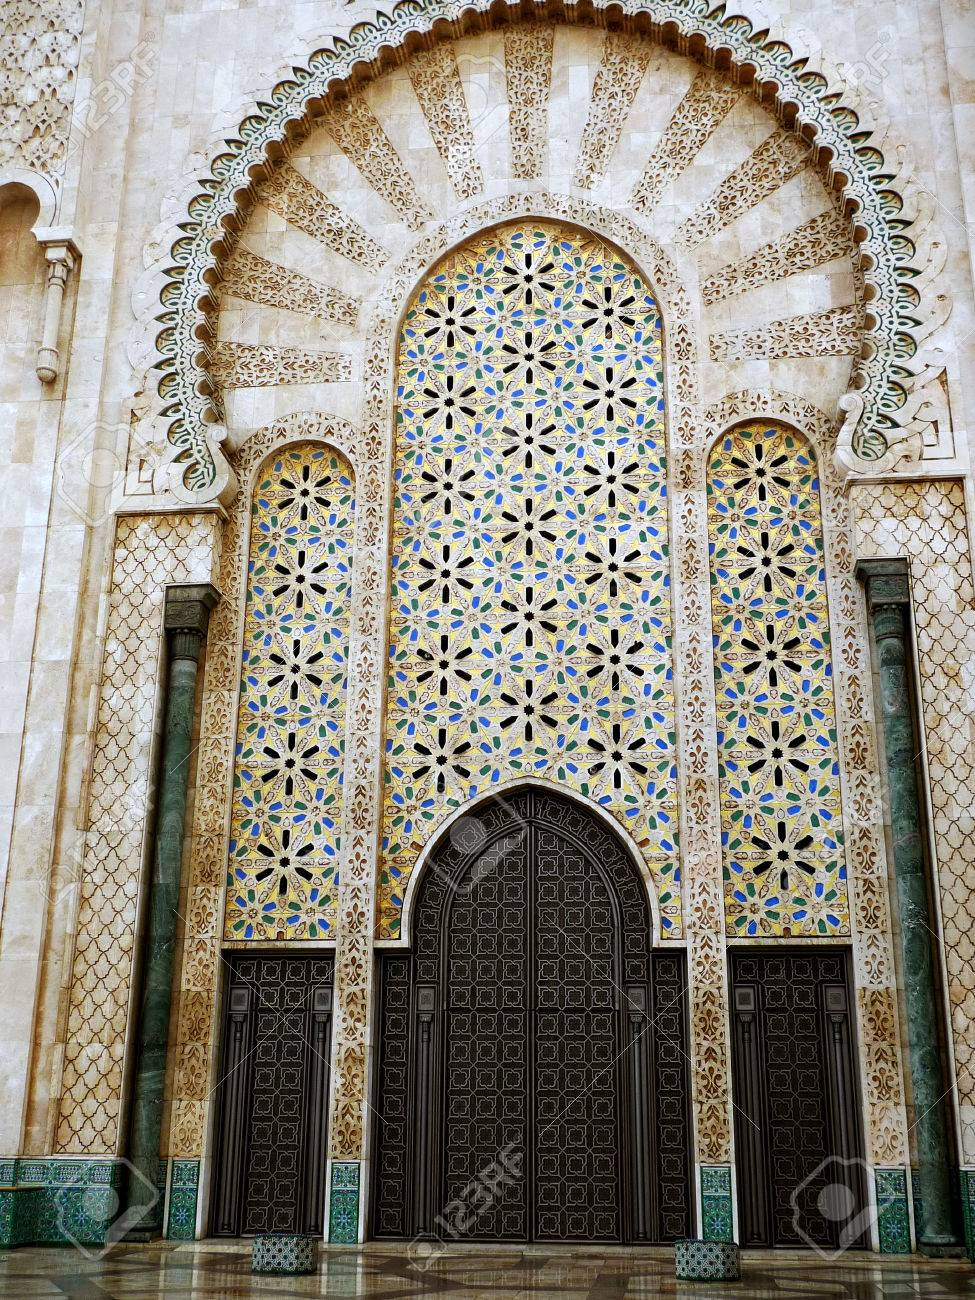 mosque door design Stock Photo - 44436509 & Mosque Door Design Stock Photo Picture And Royalty Free Image ...